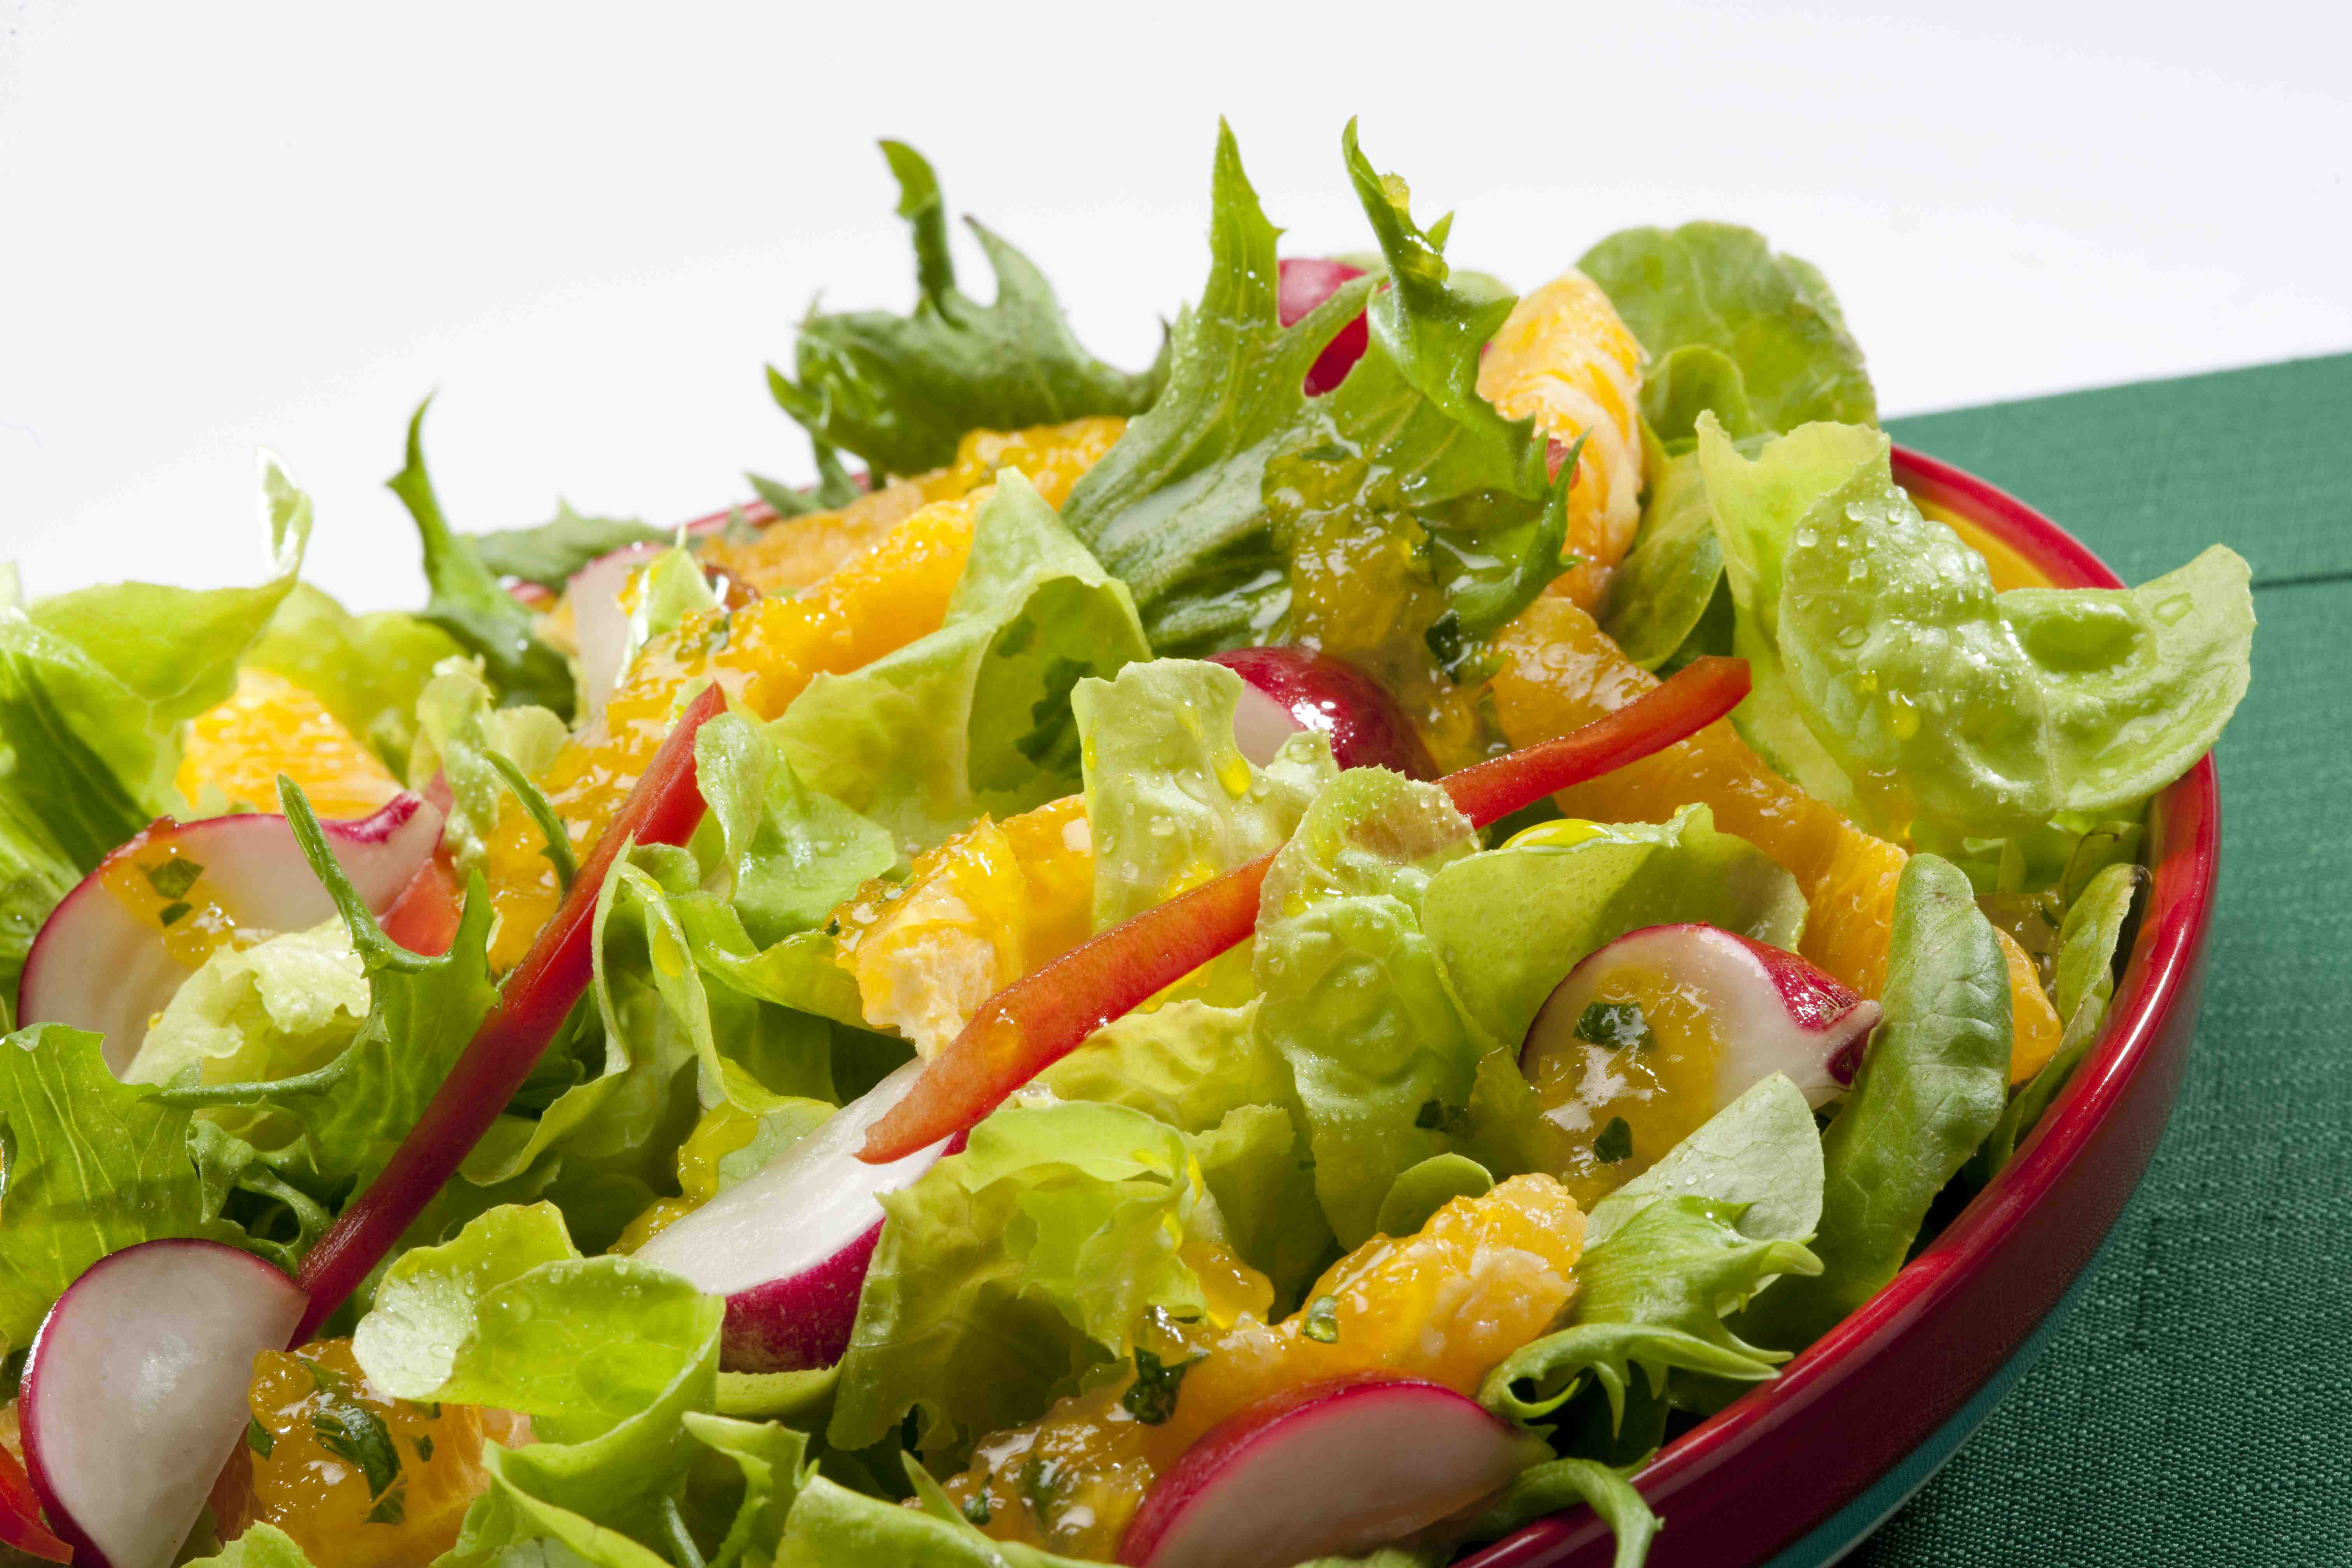 Ensalada fresca con naranja